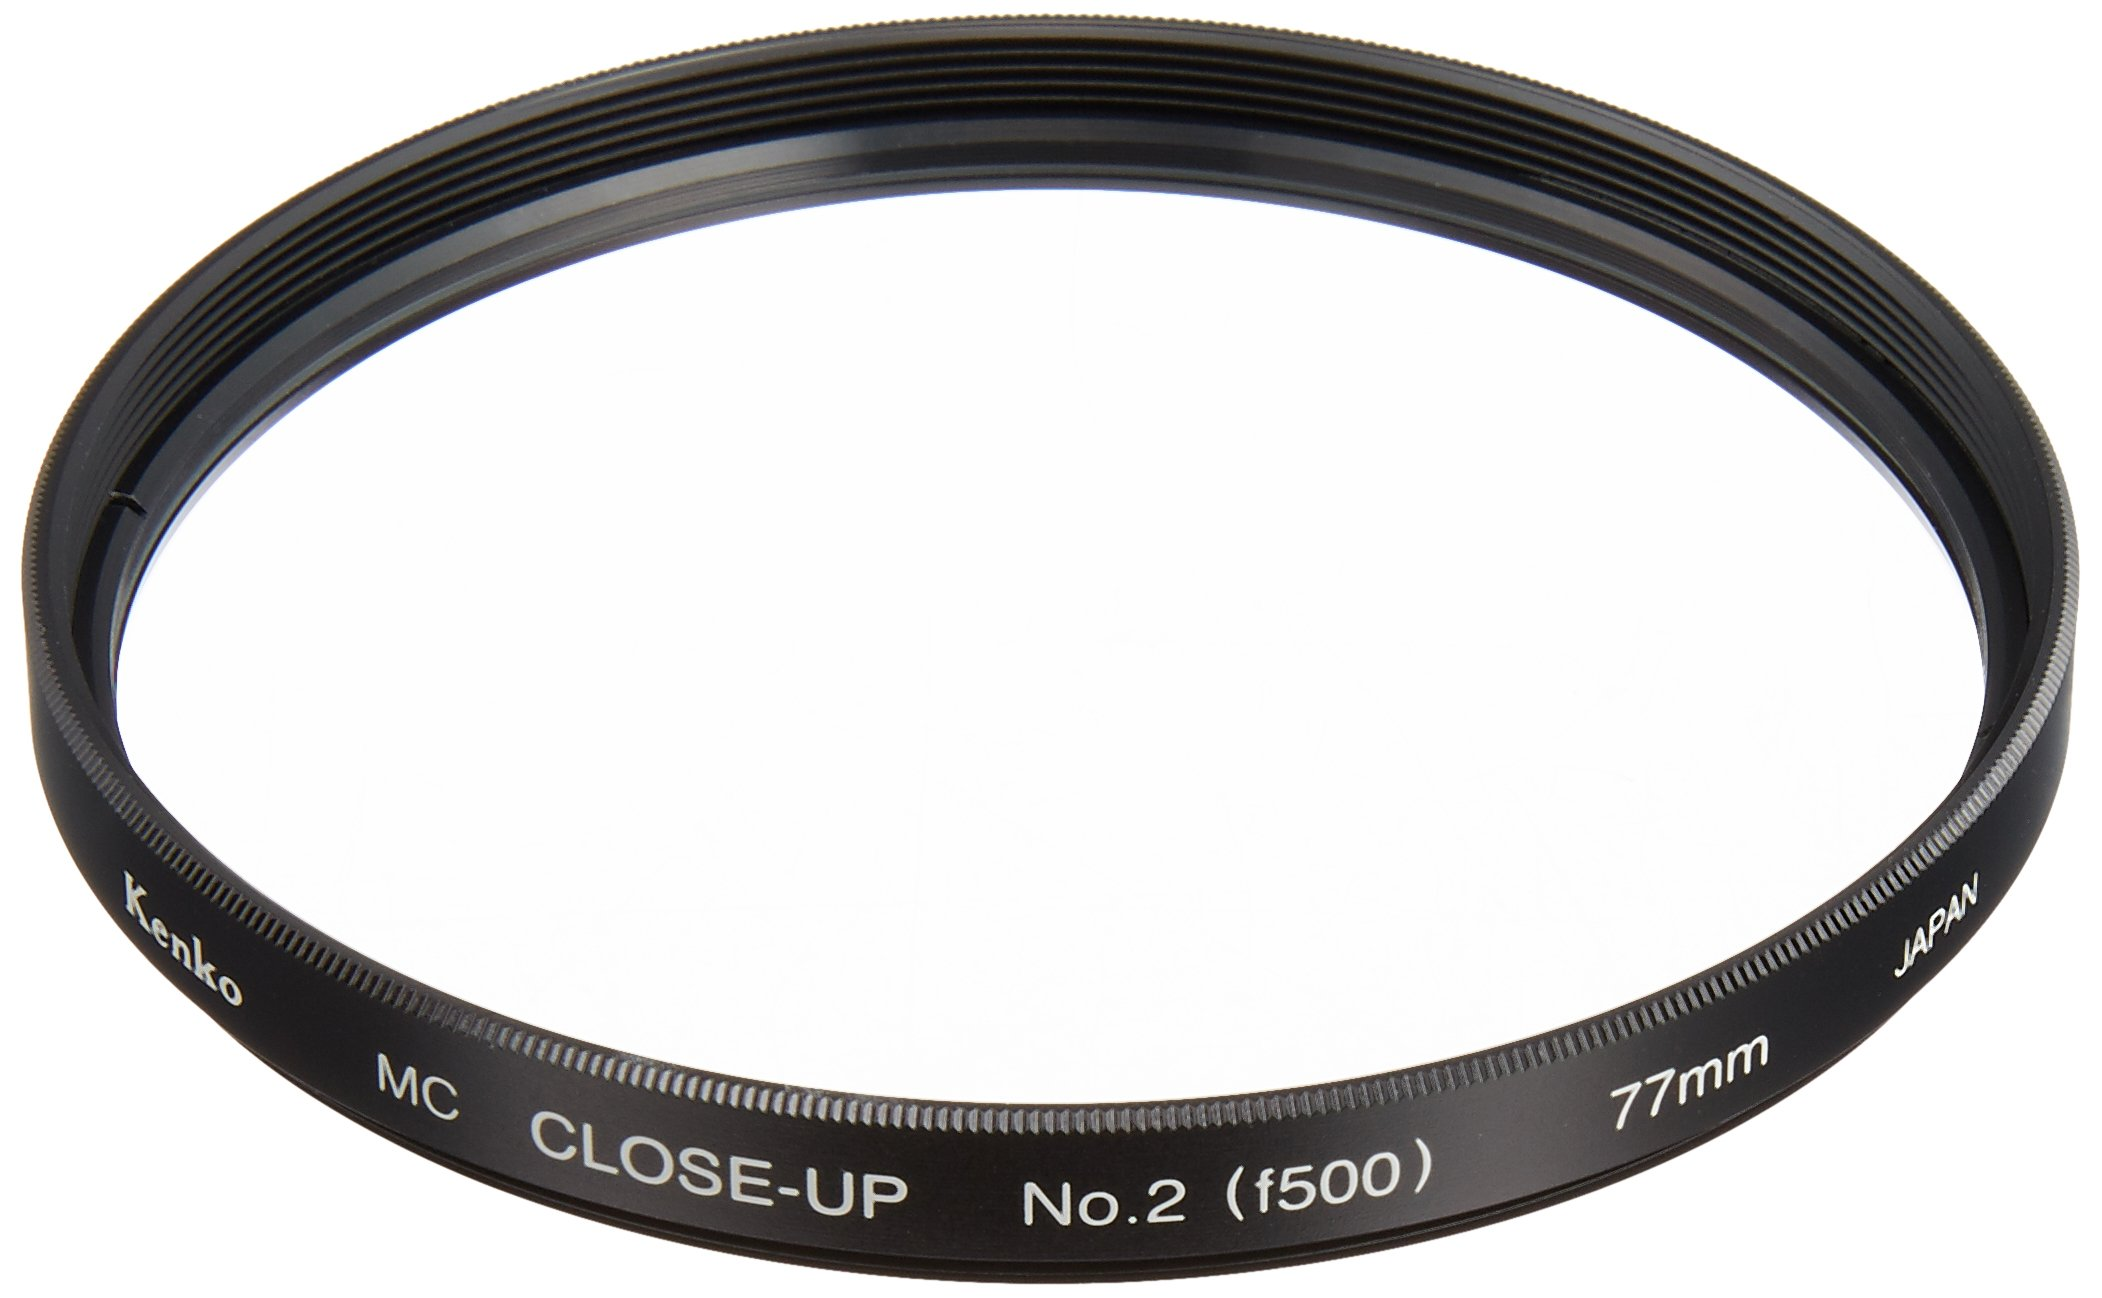 Kenko Close-Up Lens 77mm MC No.2 Multi-Coated by Kenko